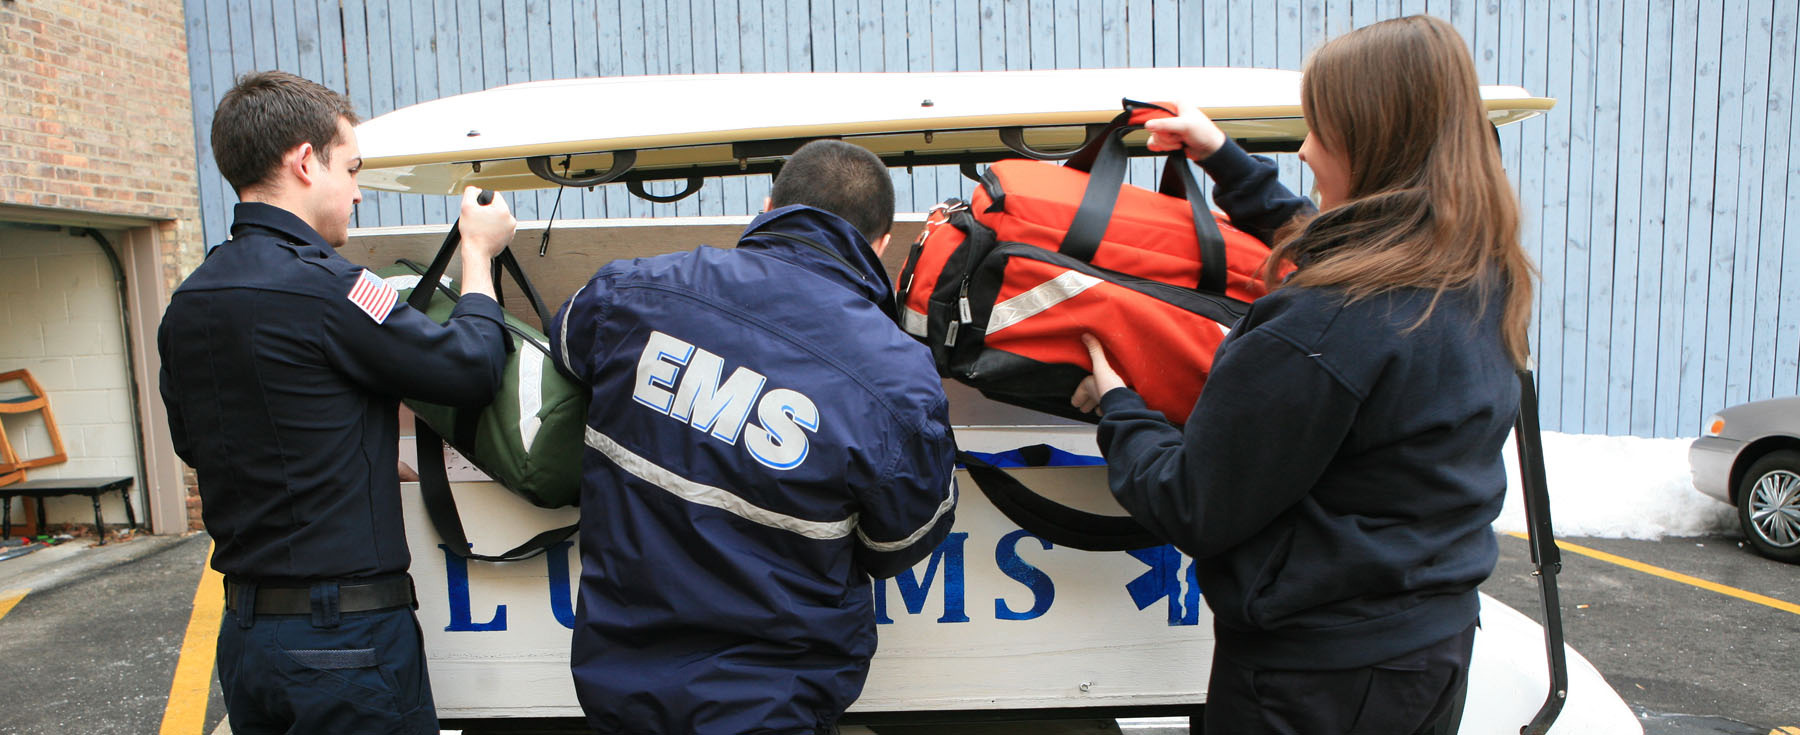 Photo of EMS professionals at work.